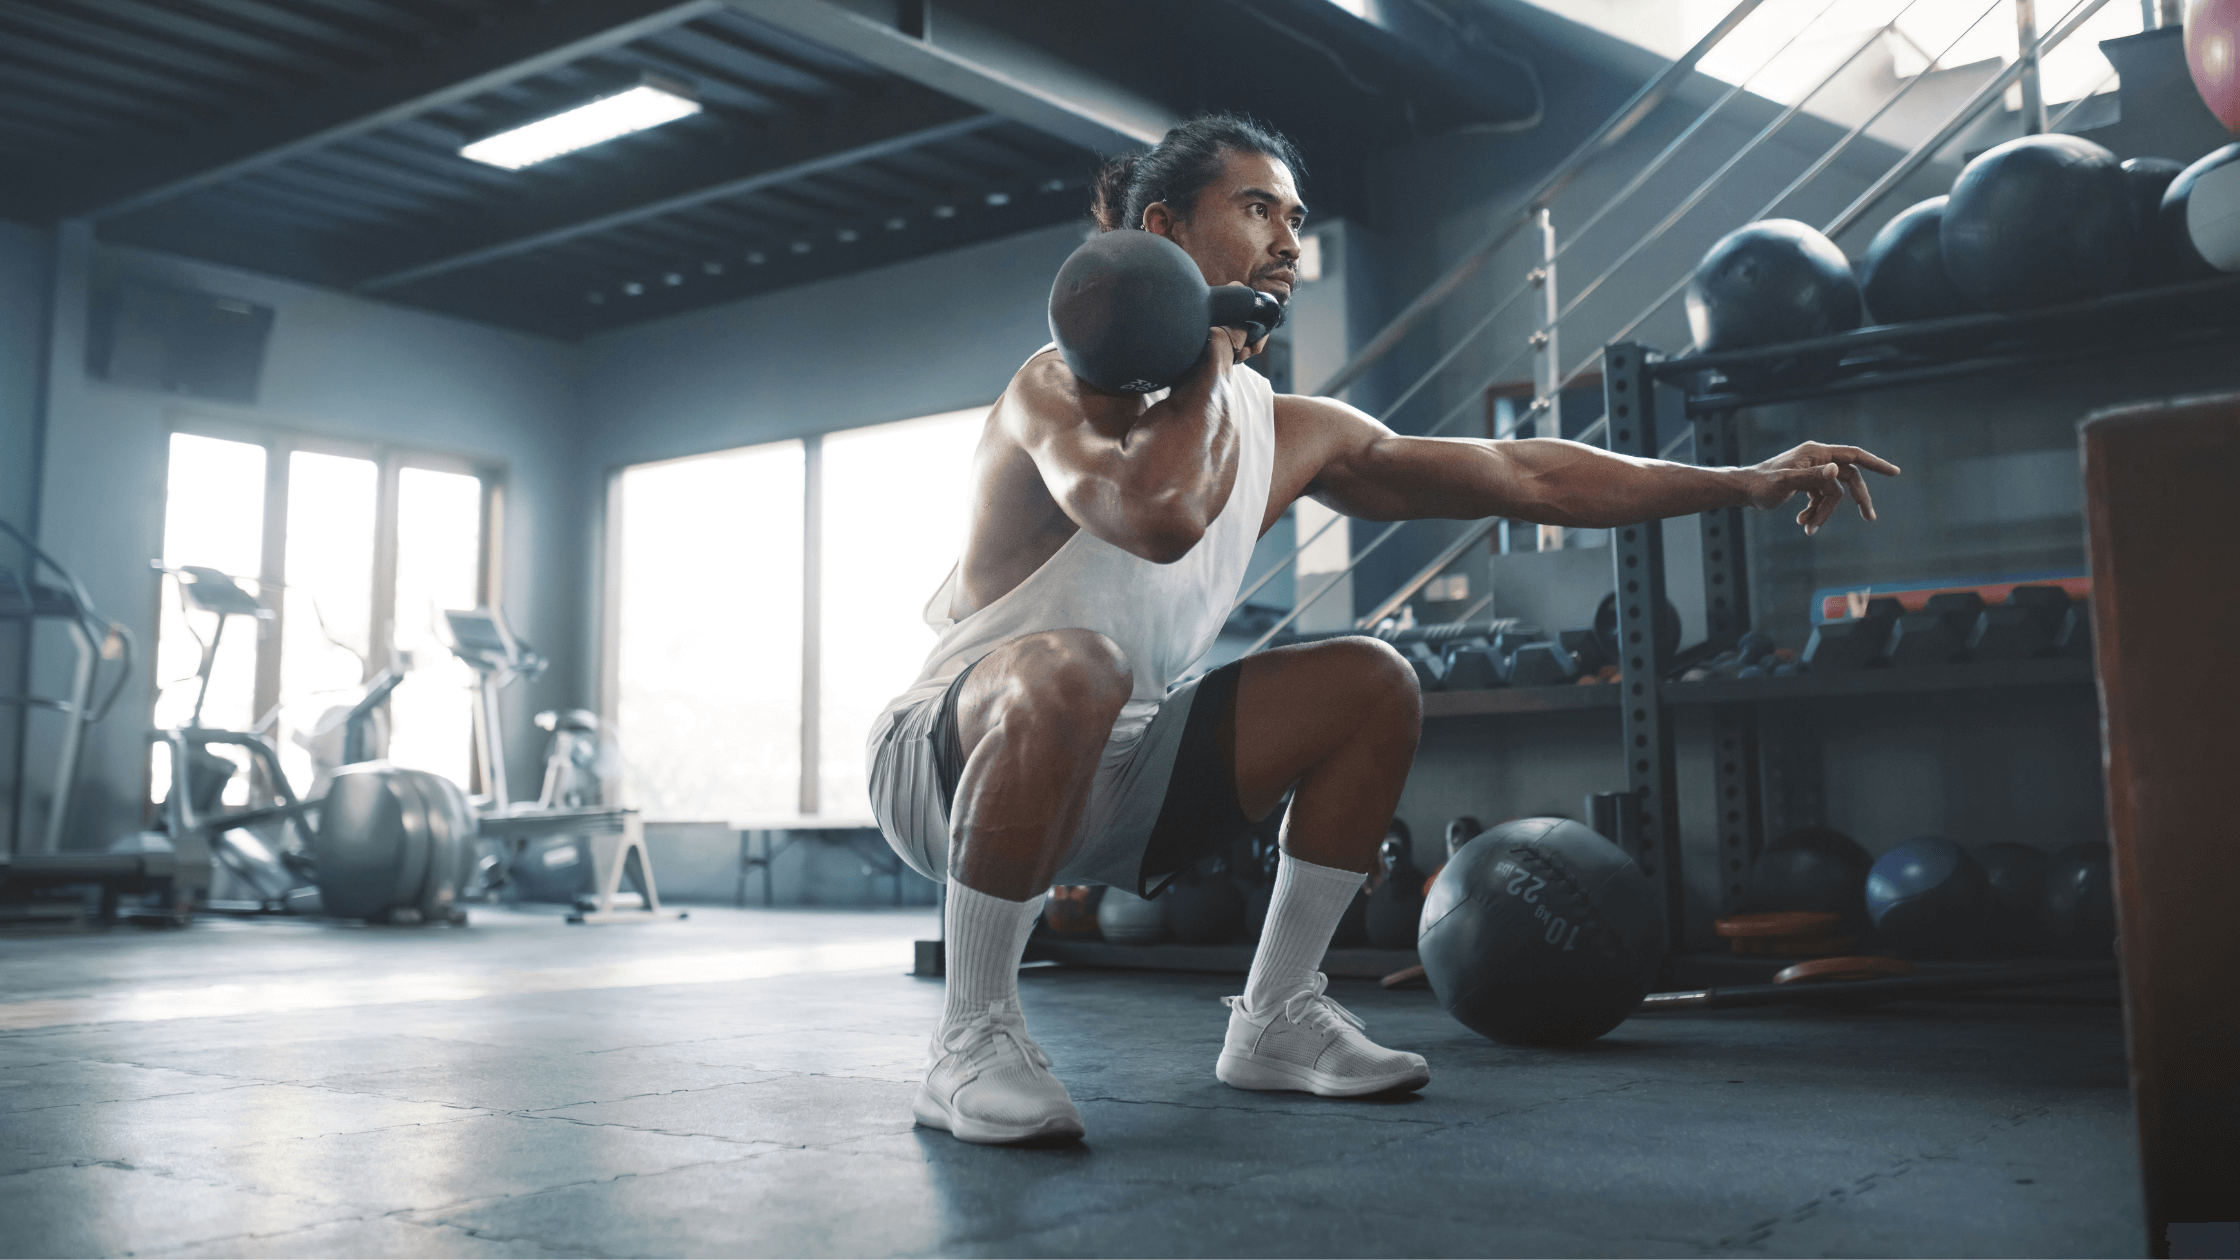 3 Key Takeaways from OPEX's Functional Bodybuilding Course